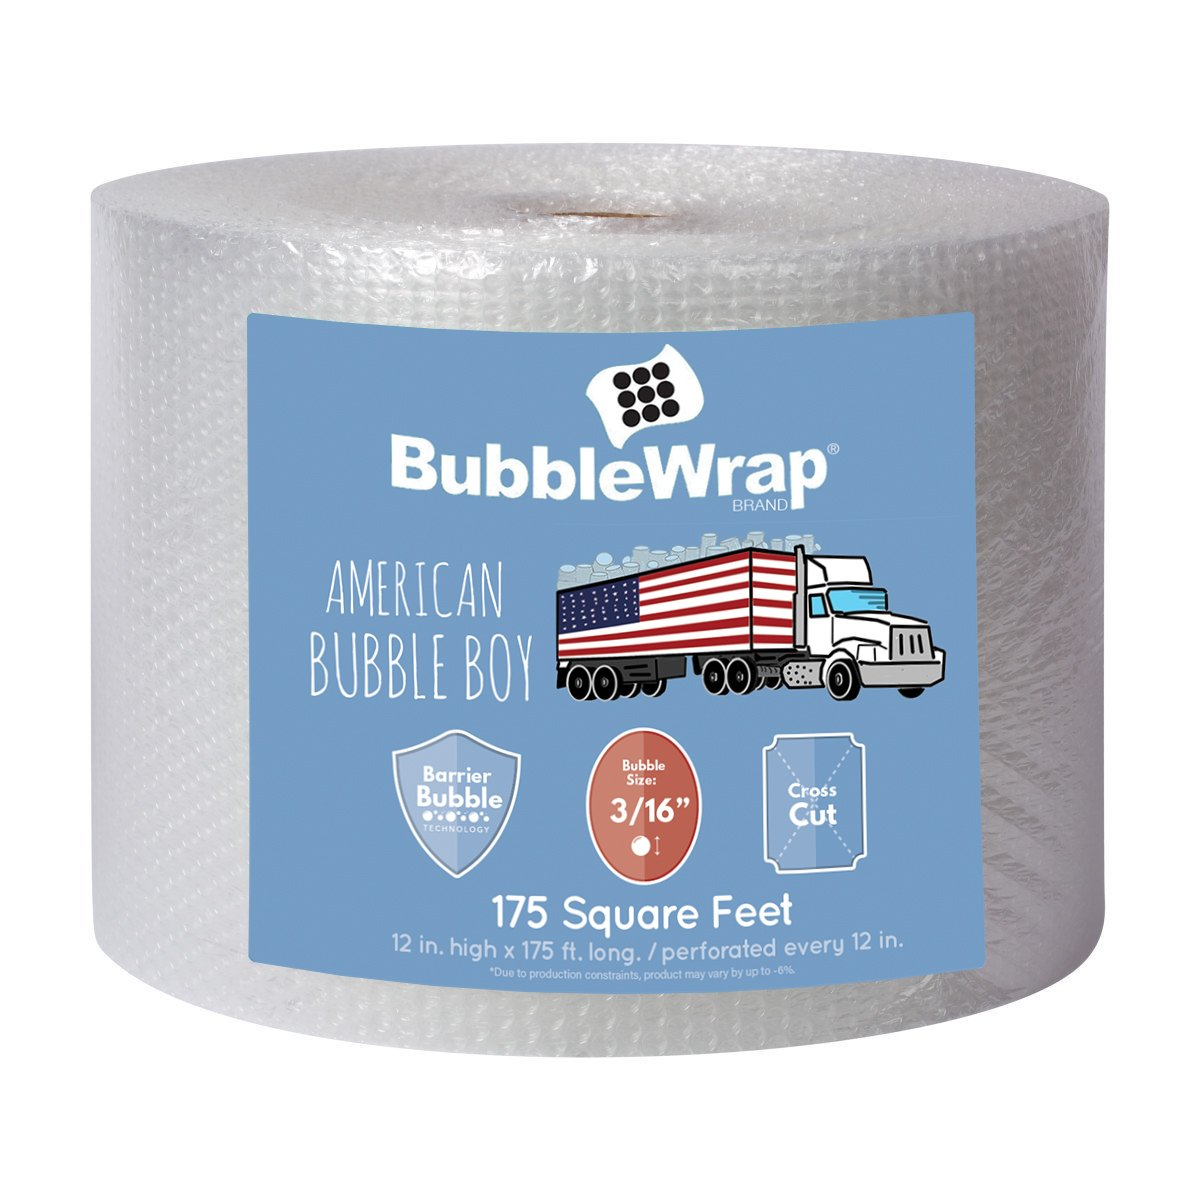 American Bubble Boy Bubble Wrap Bubble Wrap 175' Bubble Bundle For Packing, Shipping, Moving By American Bubble Boy